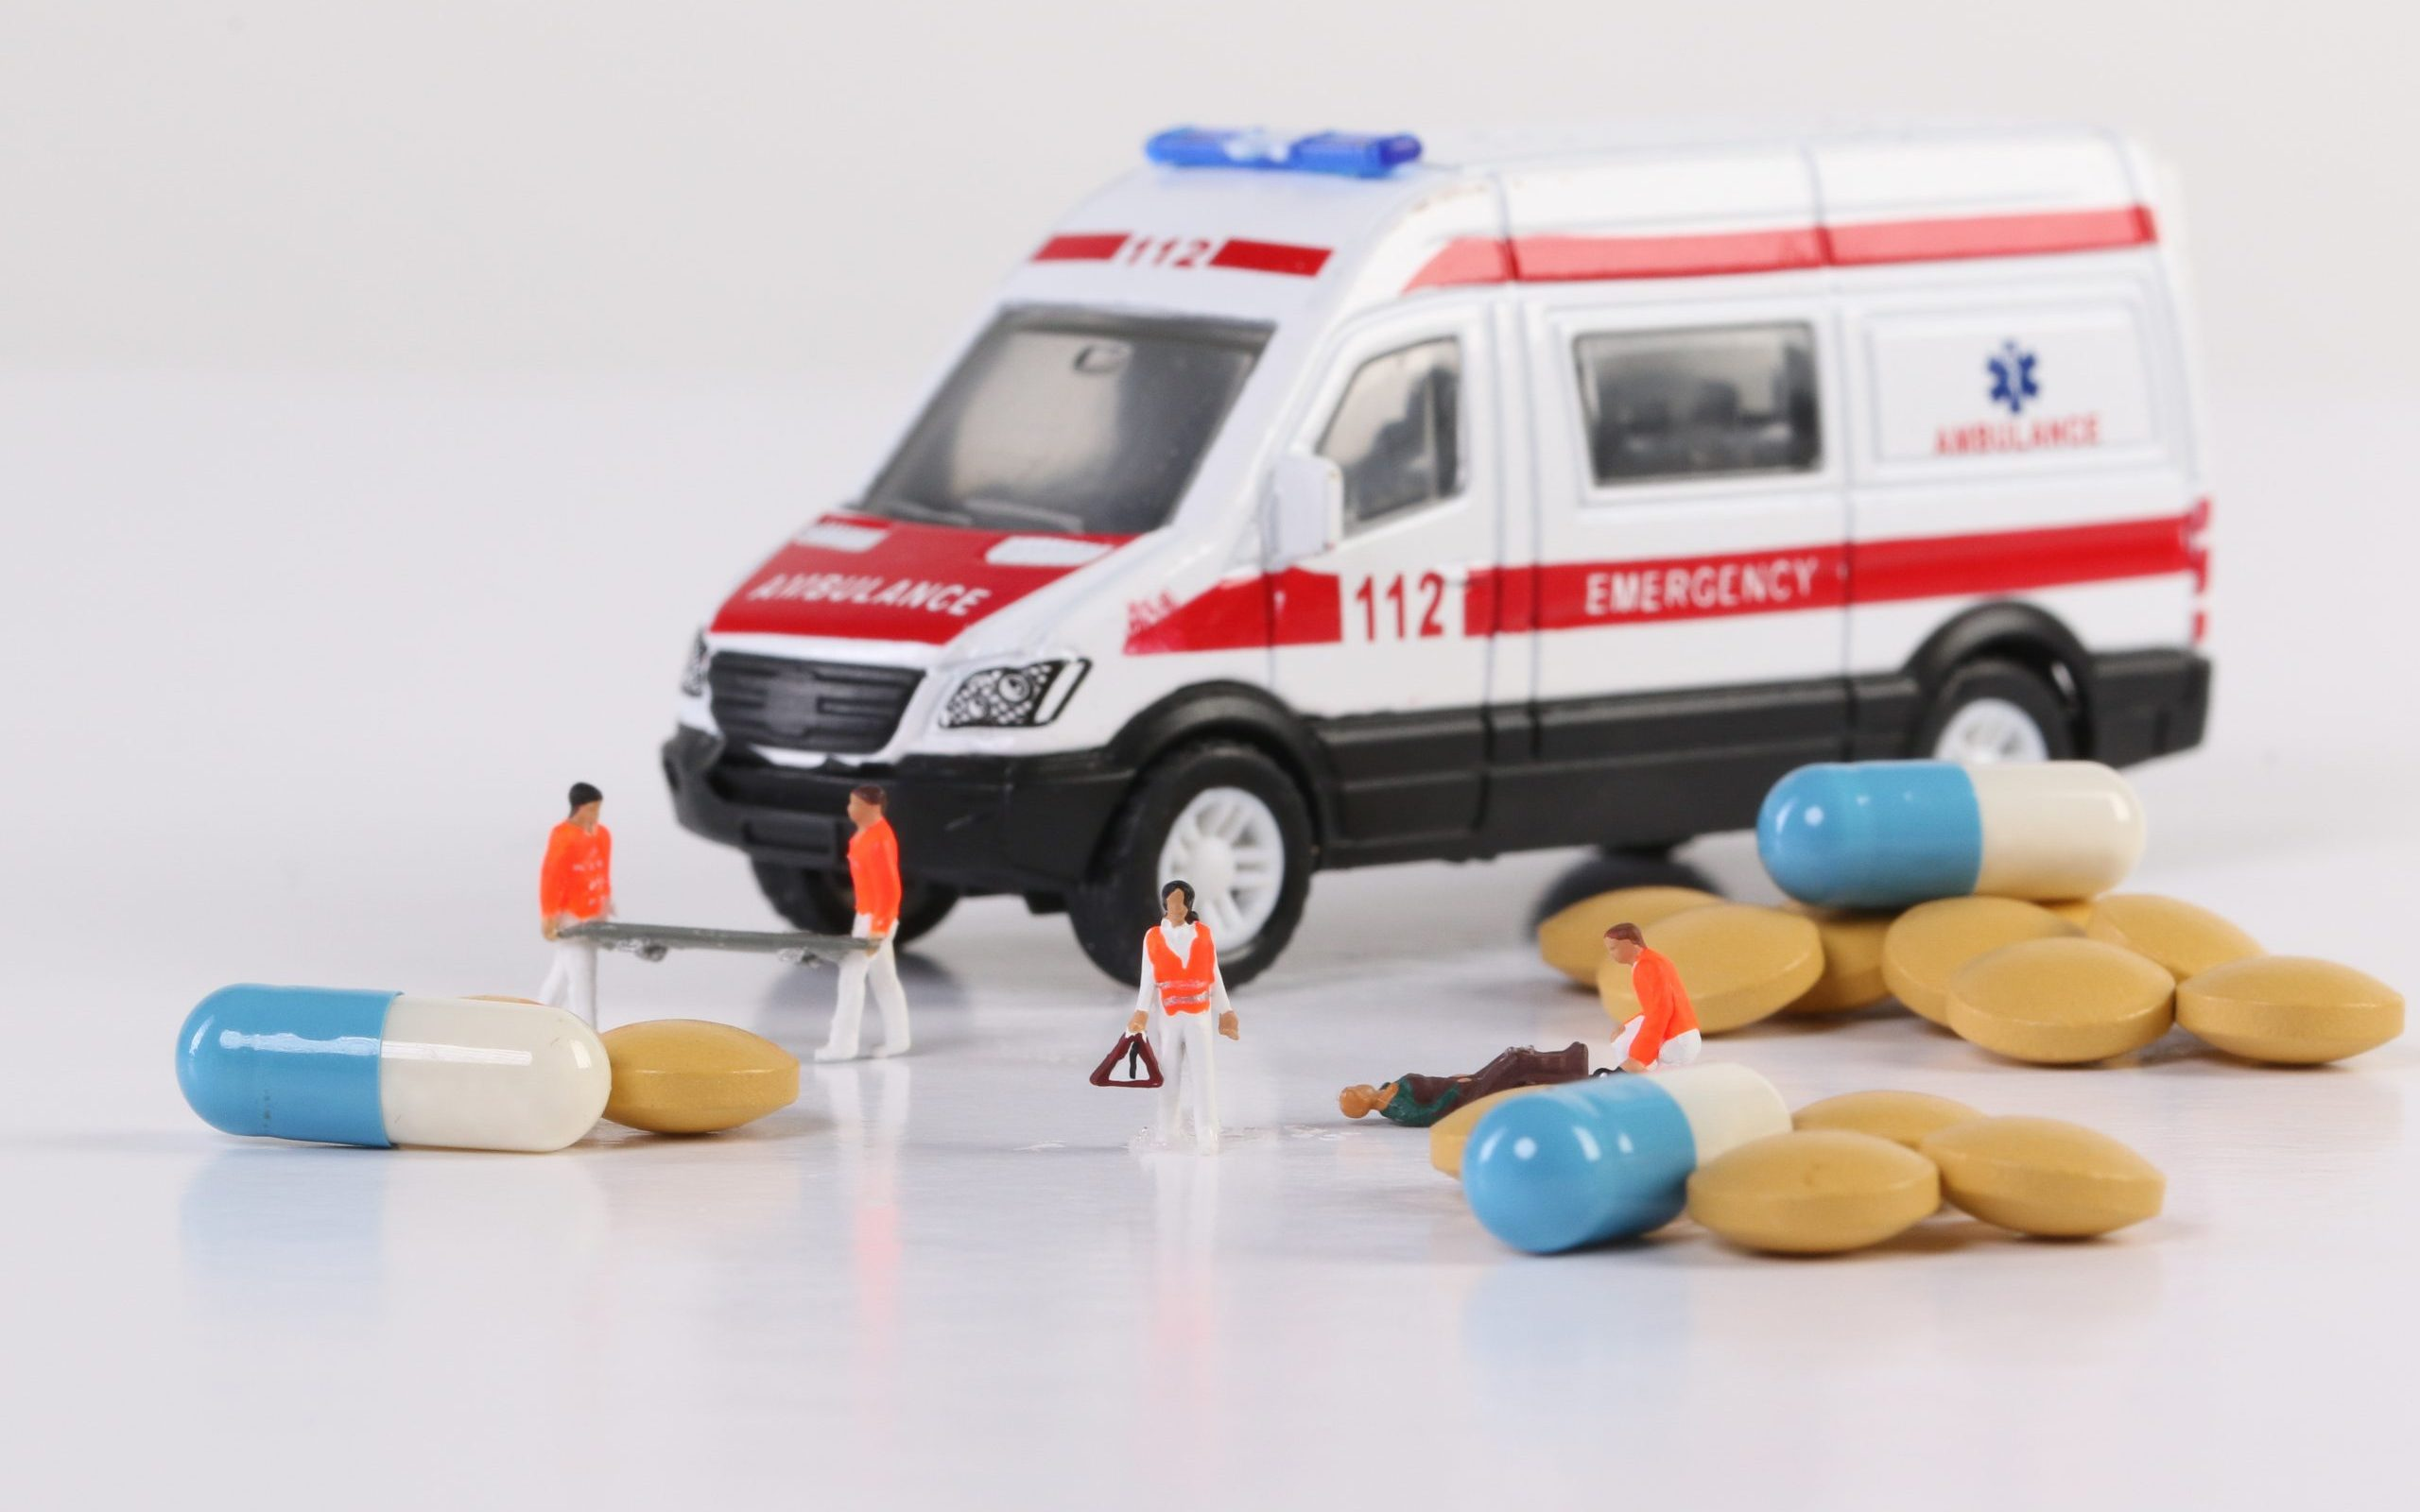 Ambulance crew helping unconscious and injured people on ground,